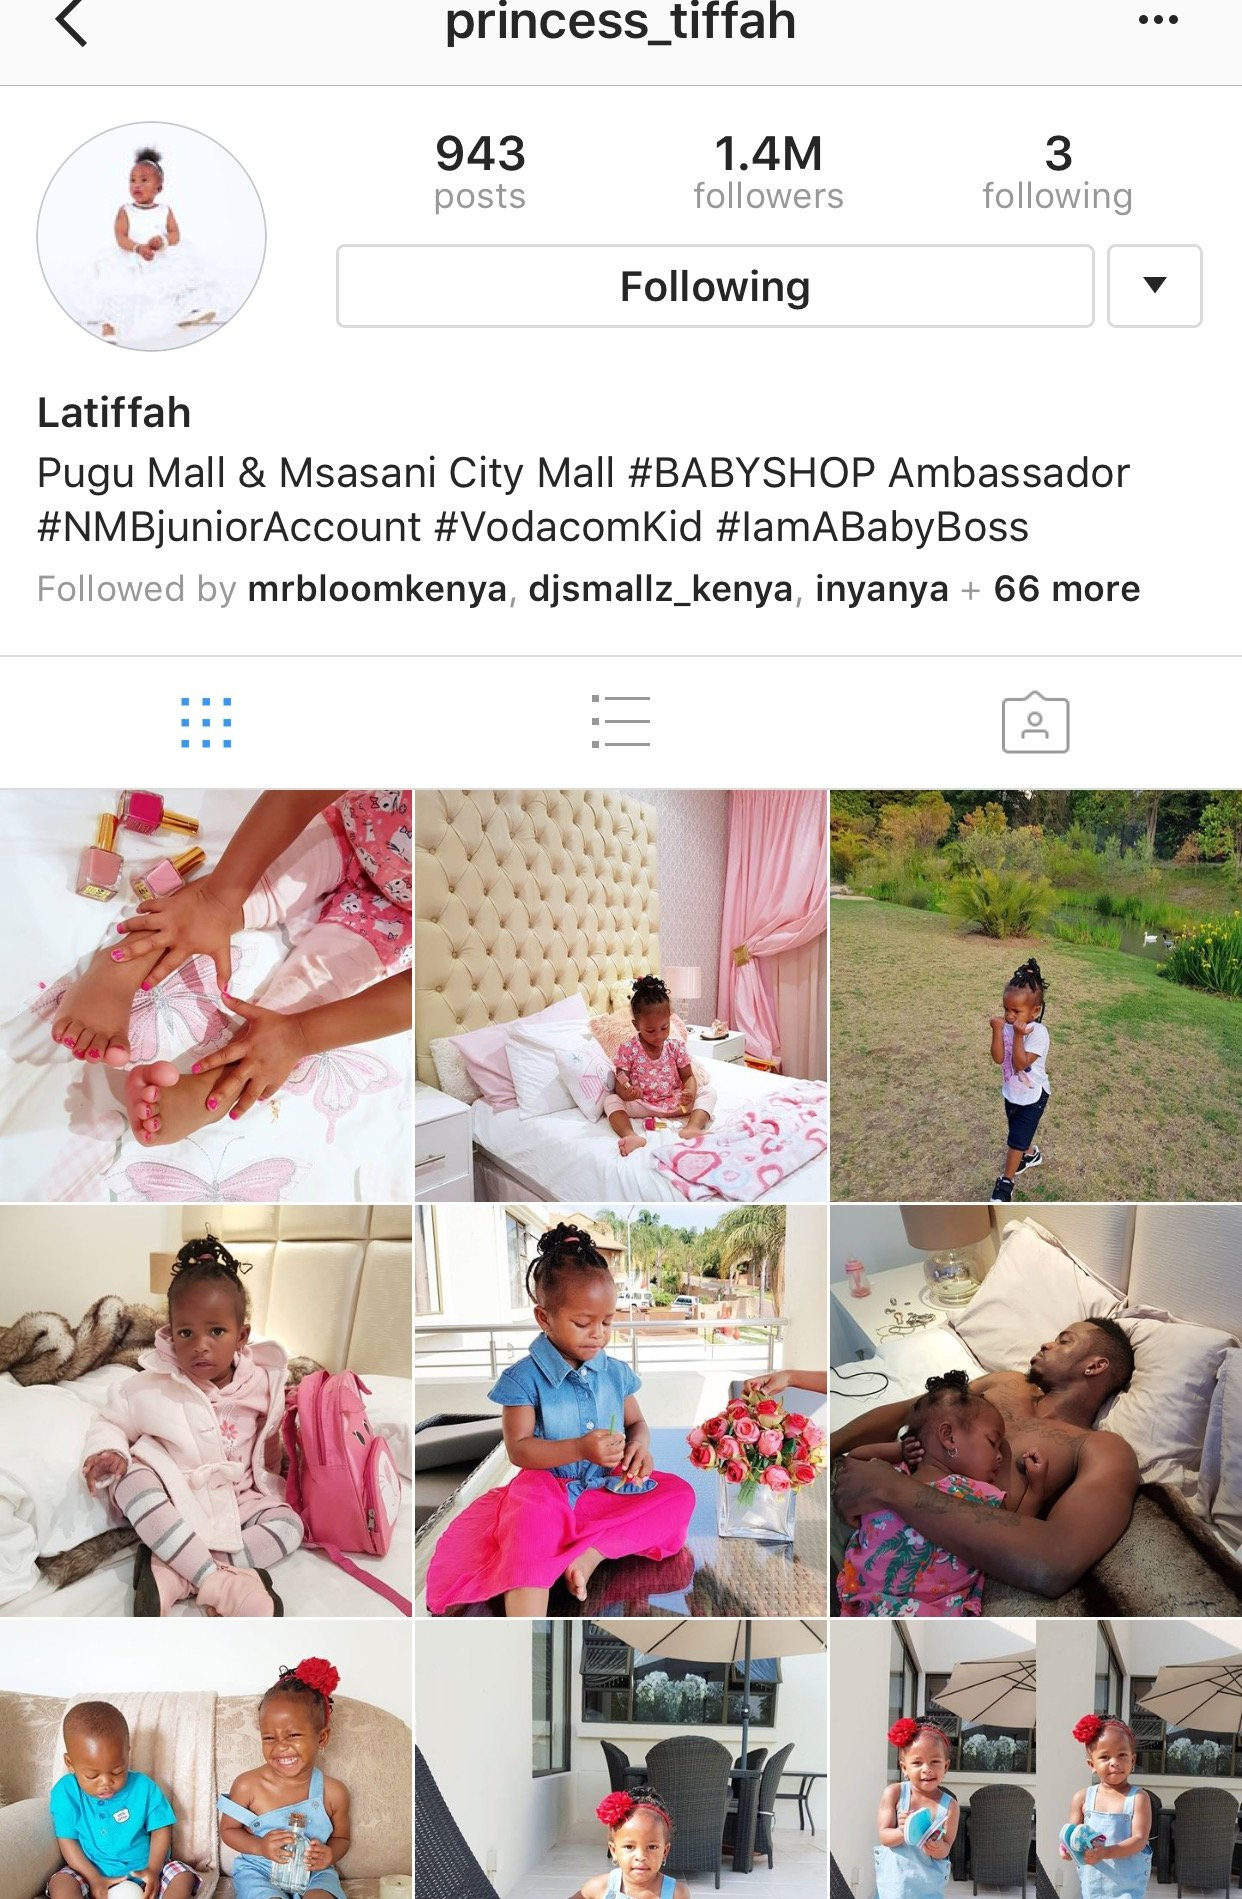 Zari deletes Diamond Platnnumz name from Tiffah's Instagram page